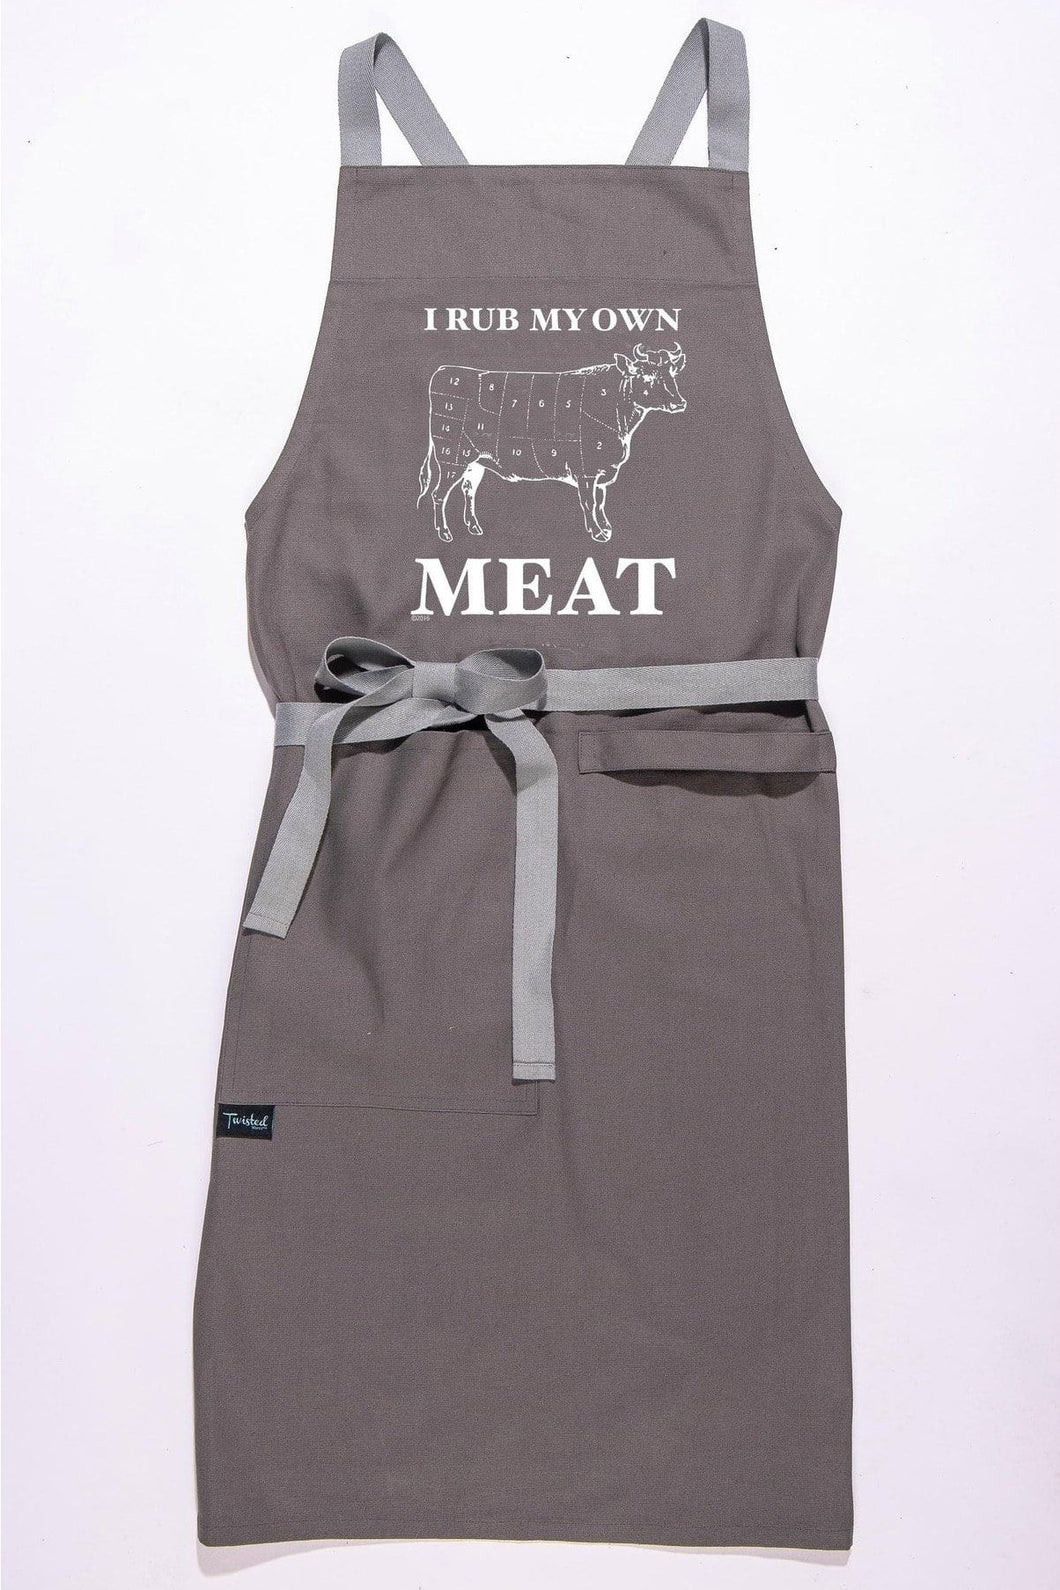 I Rub My Own Meat Apron